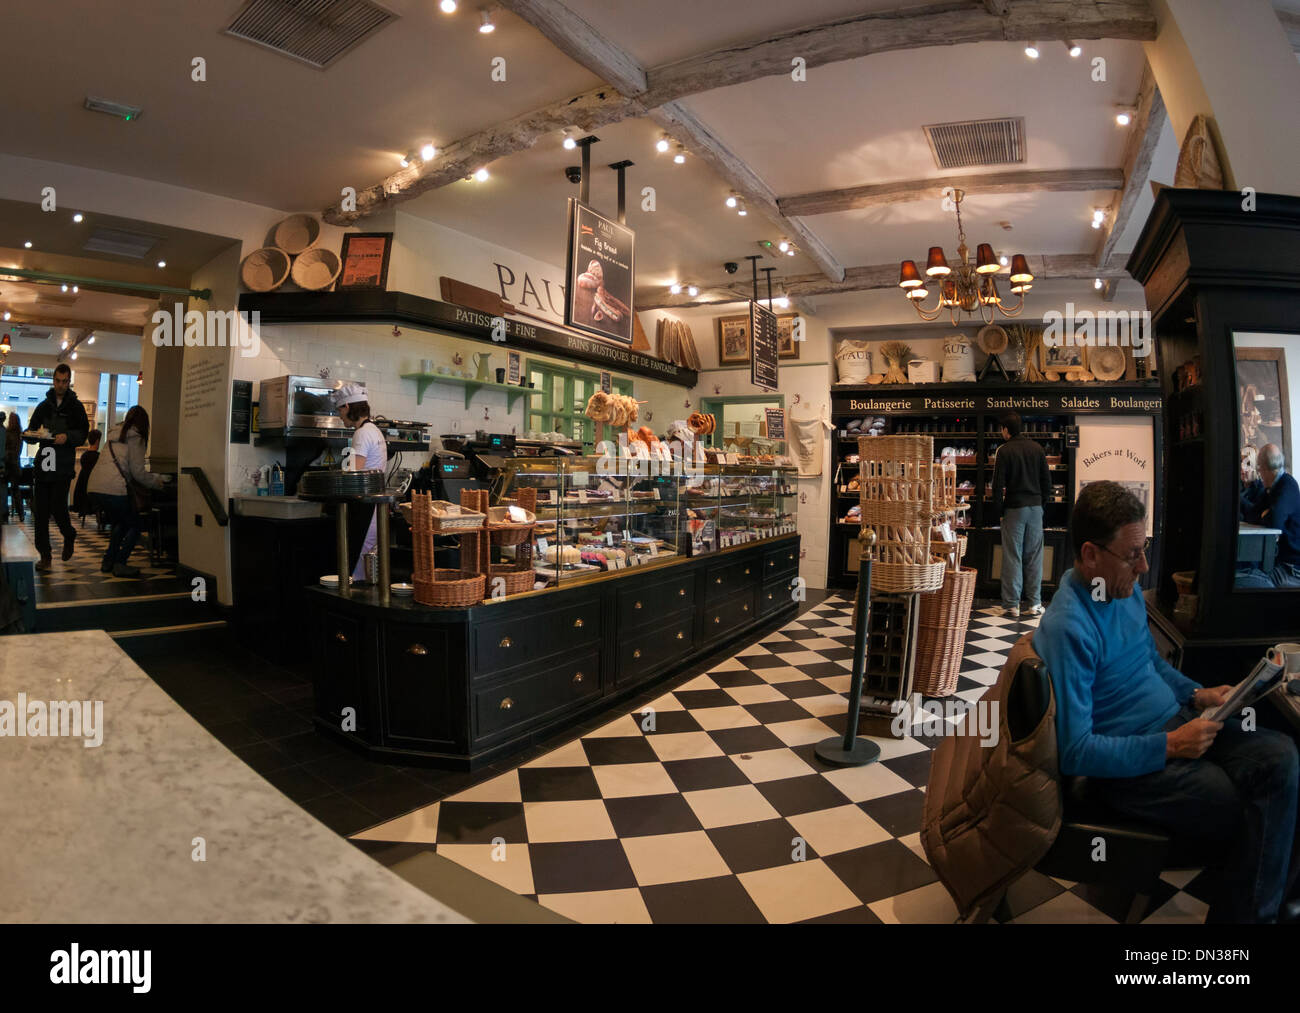 Paul Bakery and Patisserie, Baker Street, London, interior - Stock Image